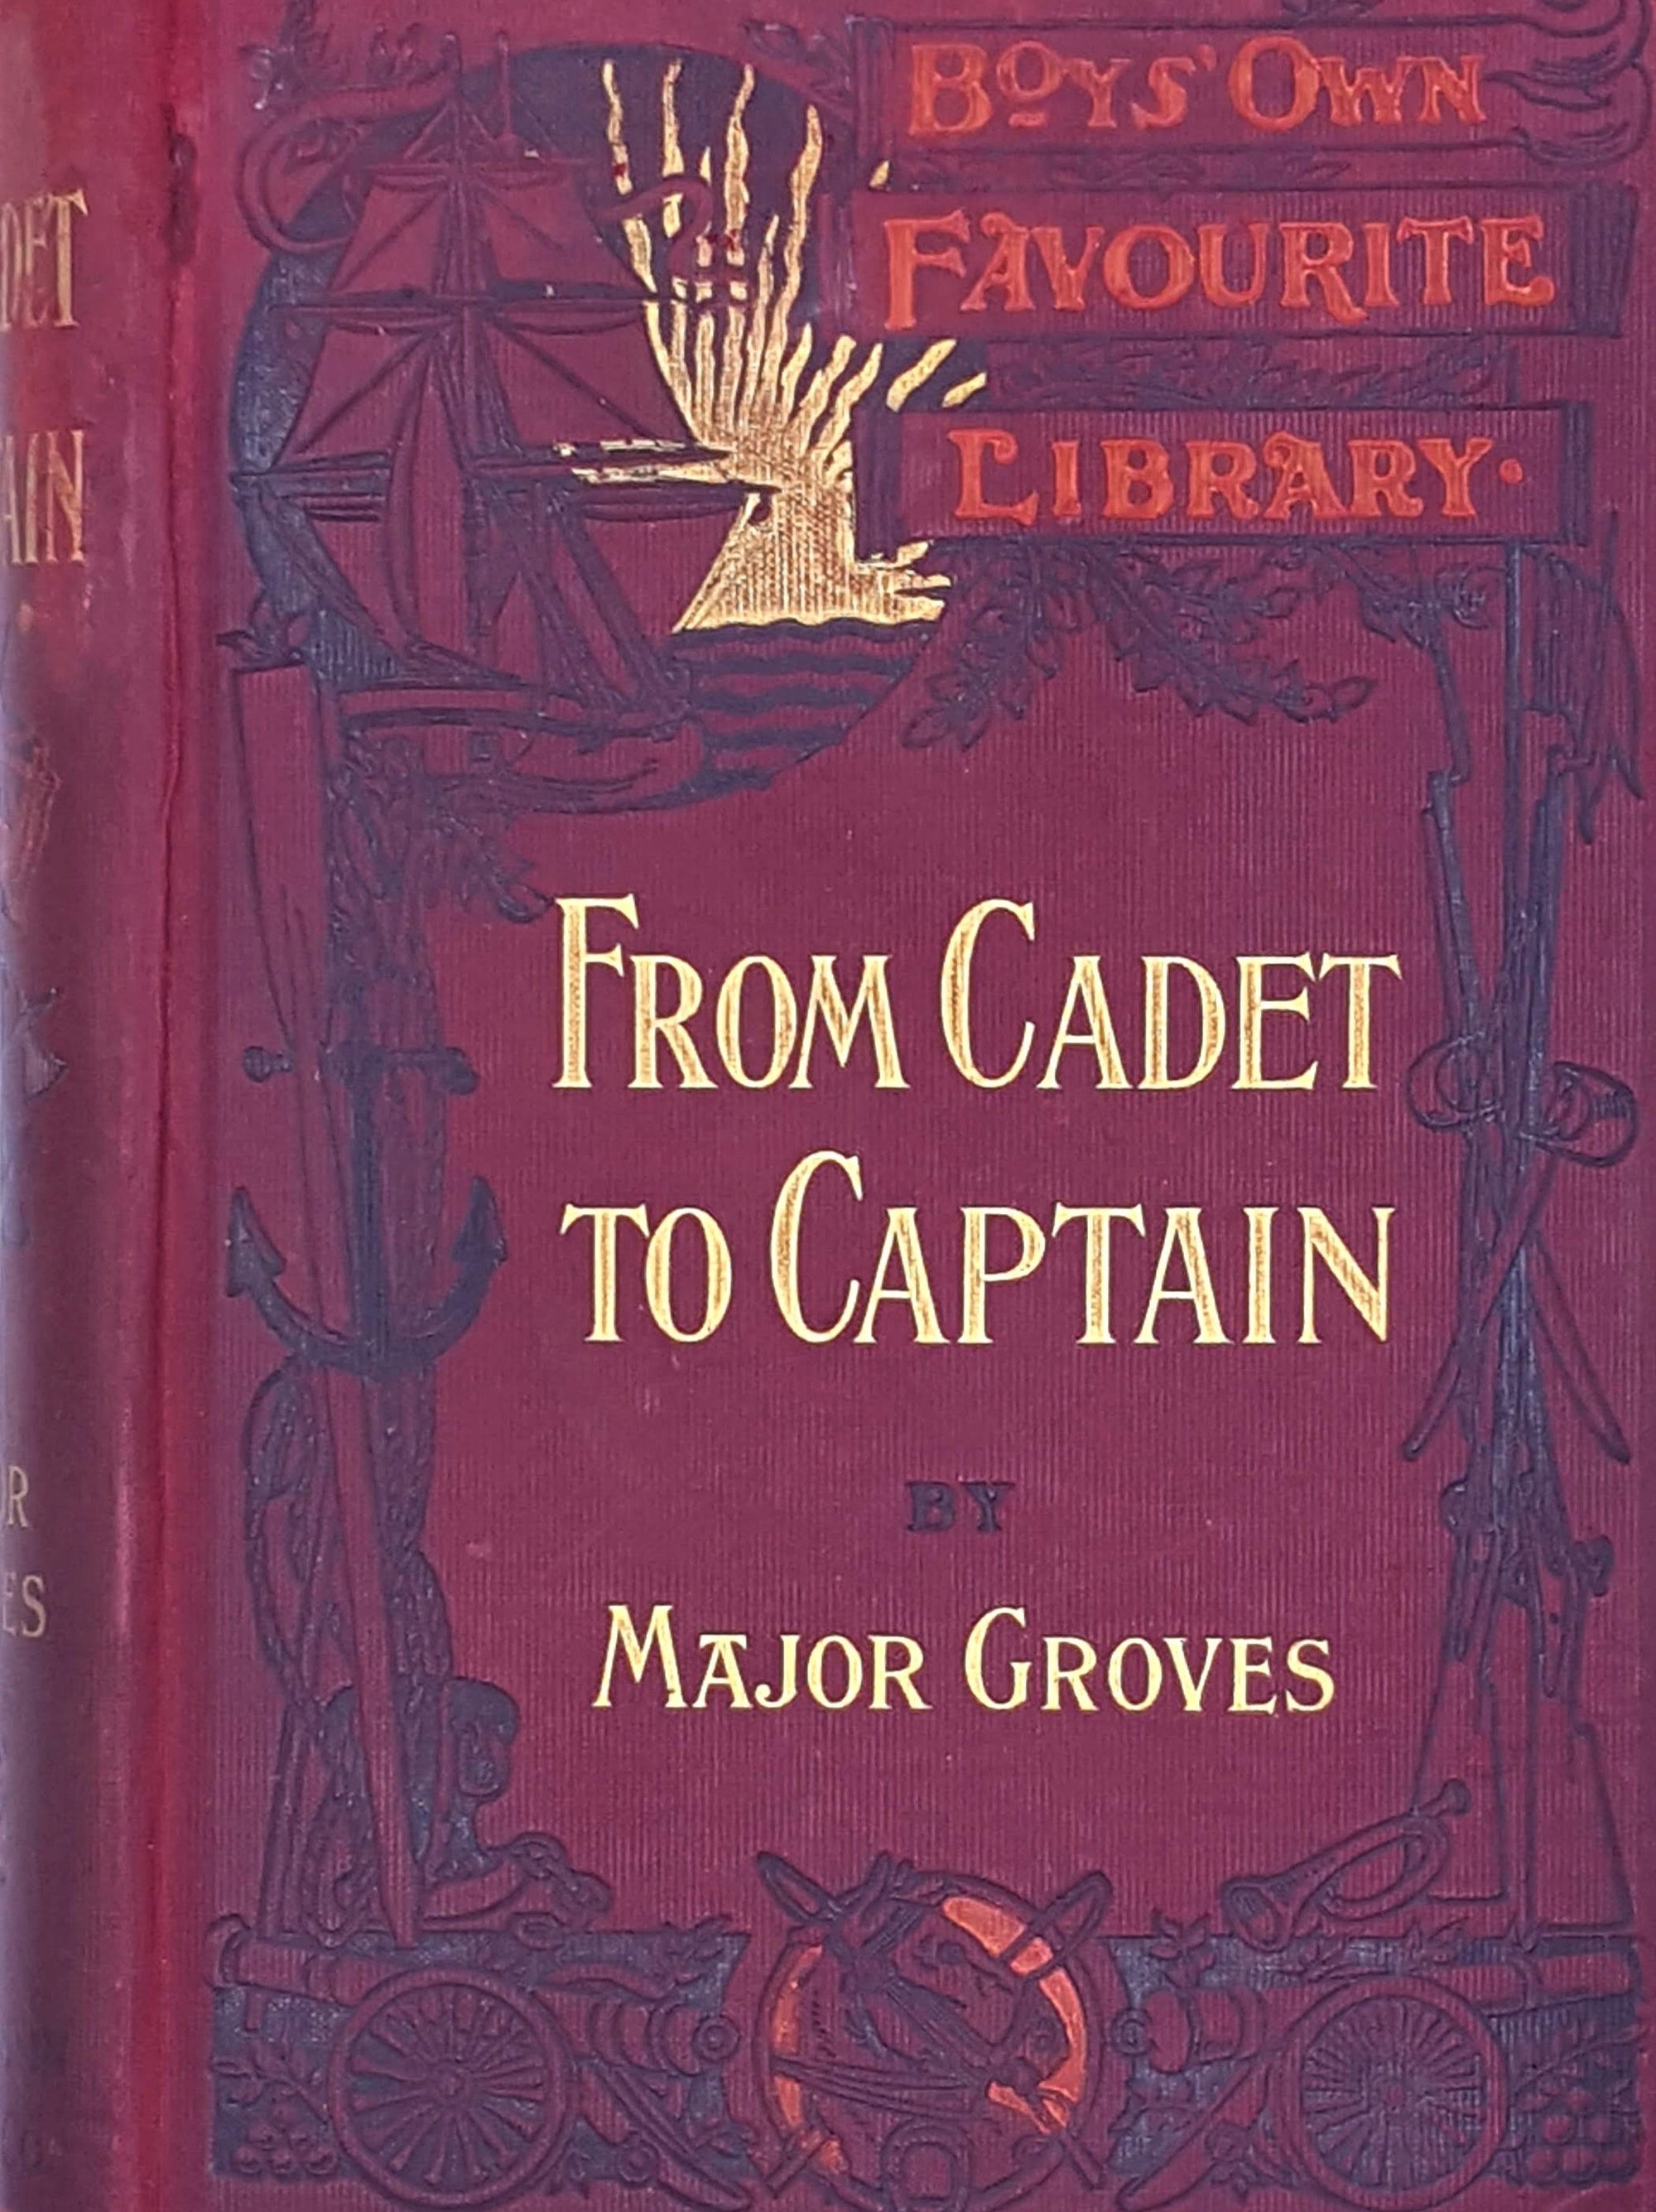 From Cadet to Captain by Major Groves 1900